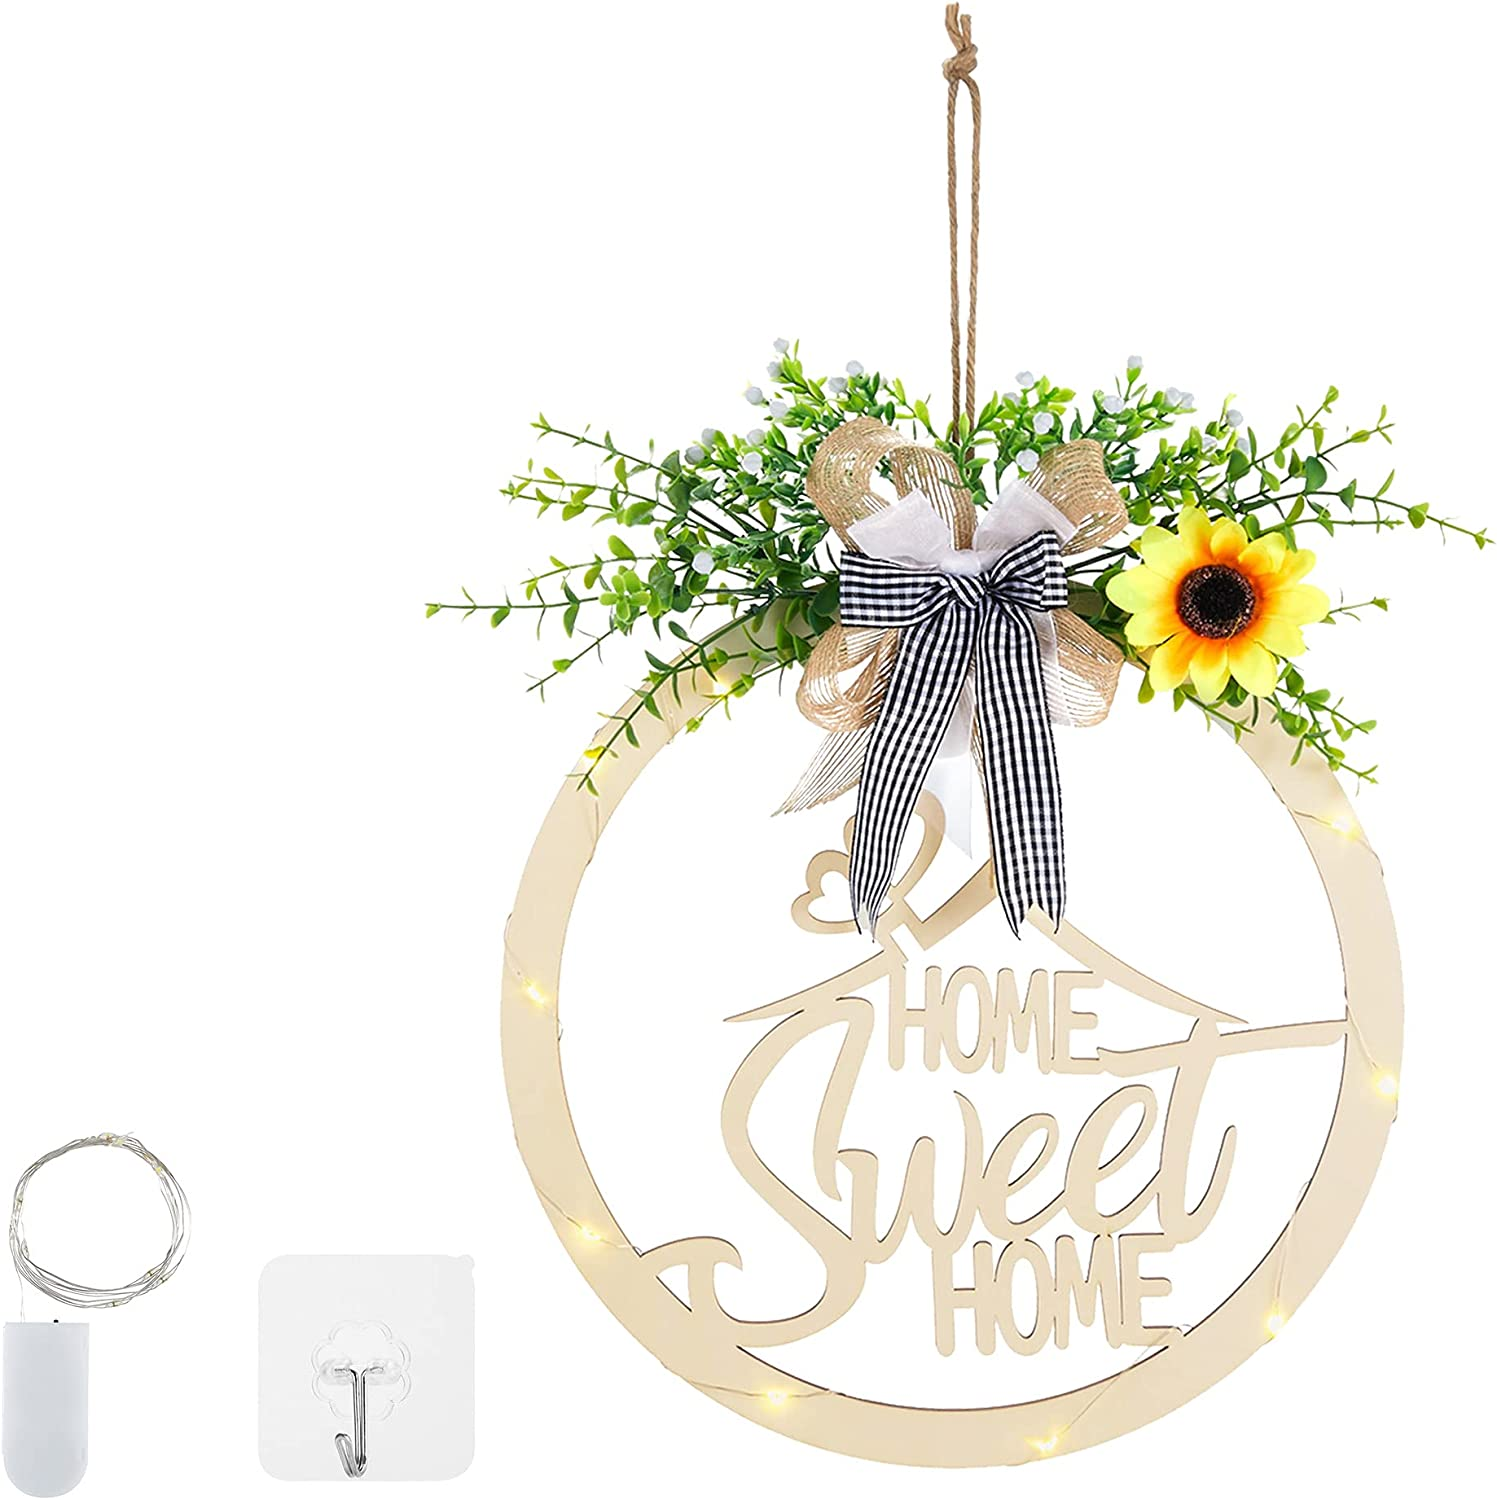 Welcome Sign for Front Door, OULXZ 12 inch Rustic Wooden Door Hangers Sunflower Welcome Wreath Sign for Farmhouse Front Porch Decor with LED Light for Home Decorations